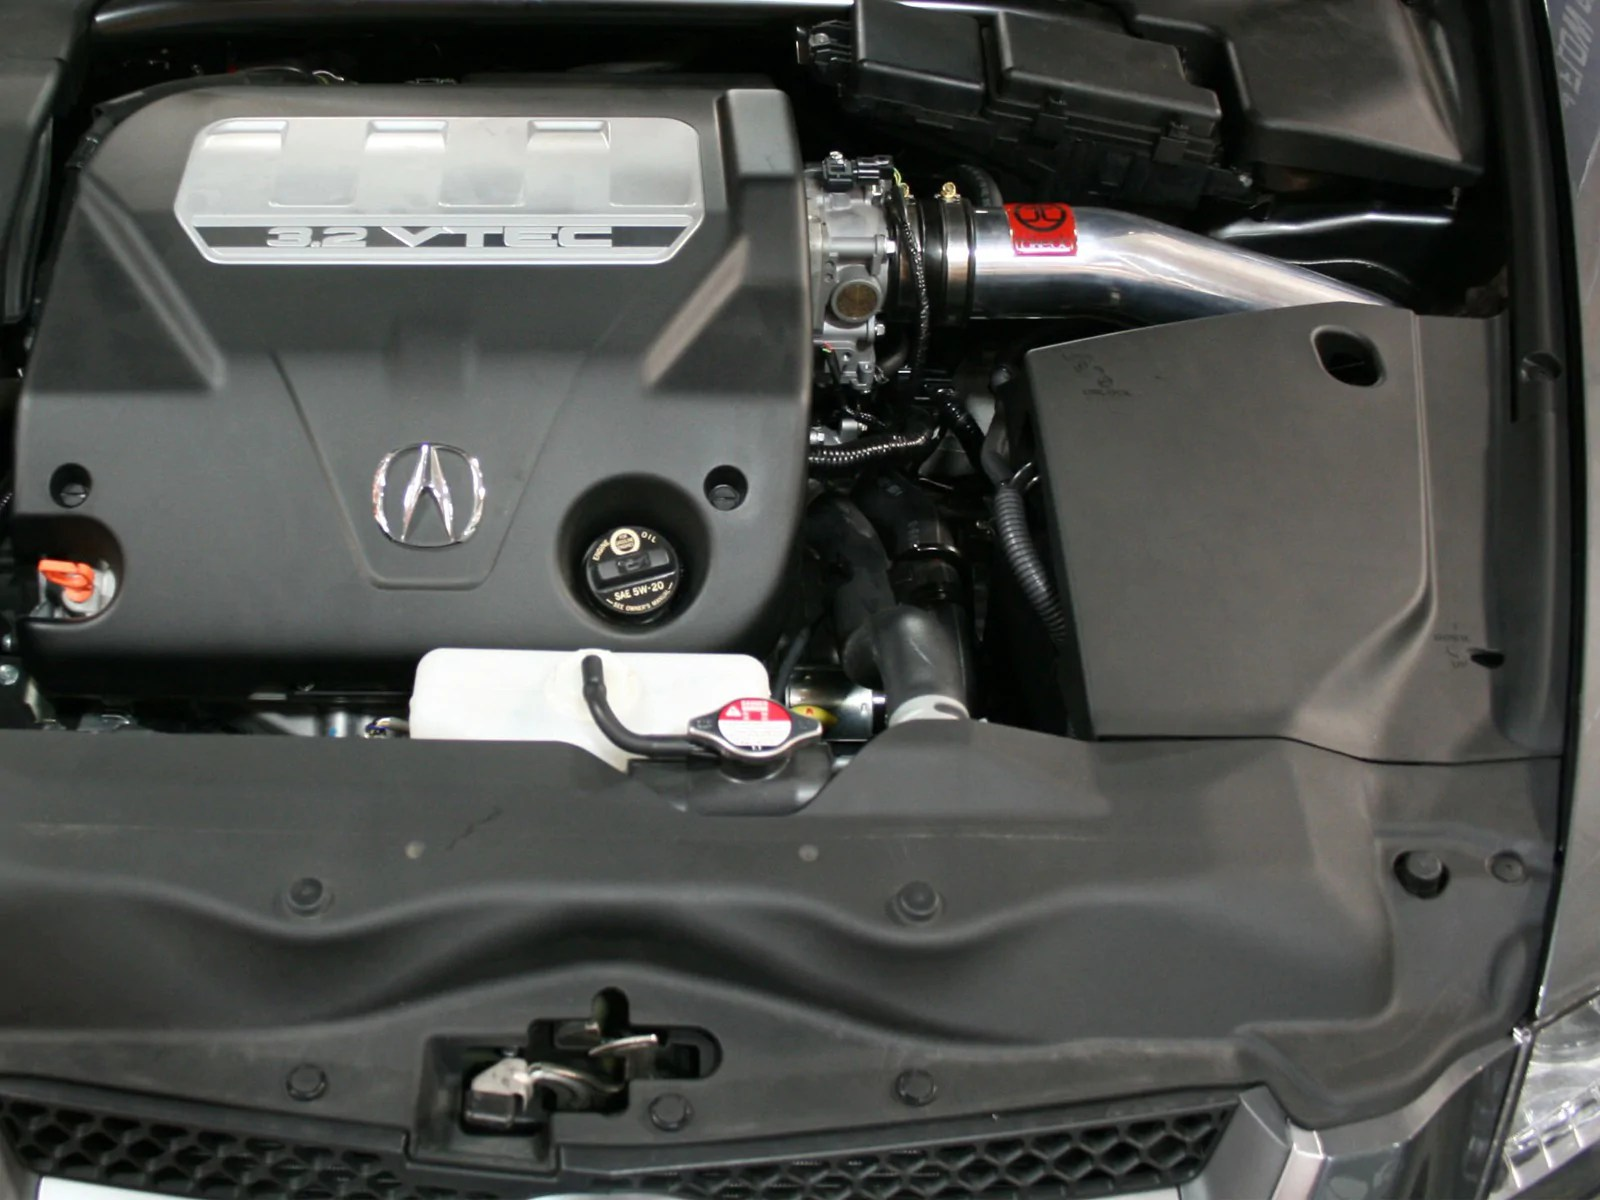 takeda stage 2 dry attack cold air intake 2004 08 acura tl 3 2l v6 [ 1600 x 1200 Pixel ]